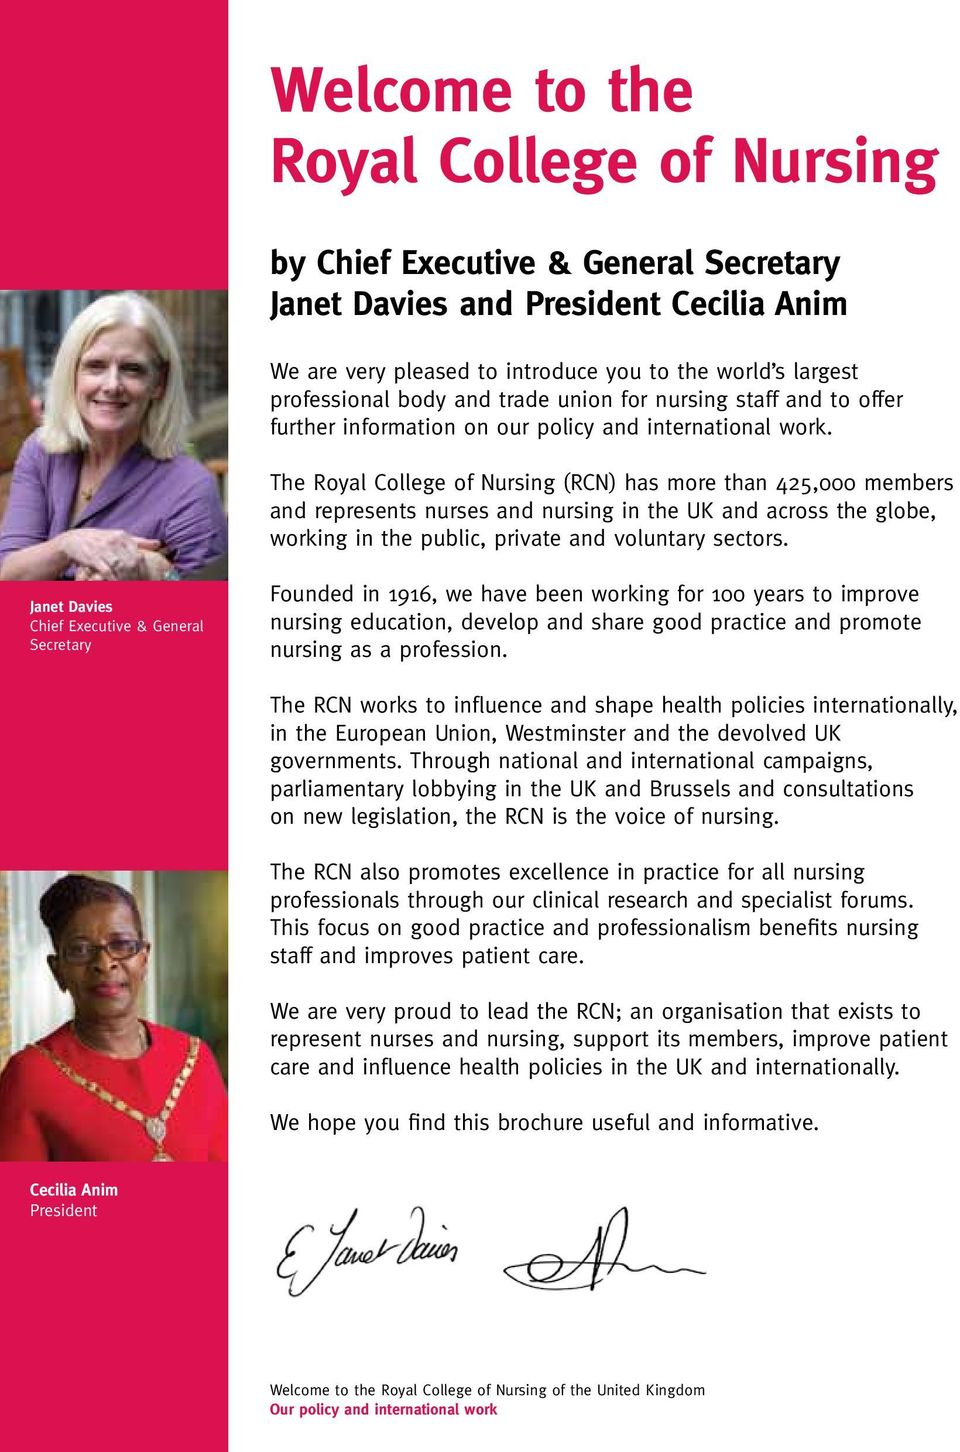 The Royal College of Nursing (RCN) has more than 425,000 members and represents nurses and nursing in the UK and across the globe, working in the public, private and voluntary sectors.